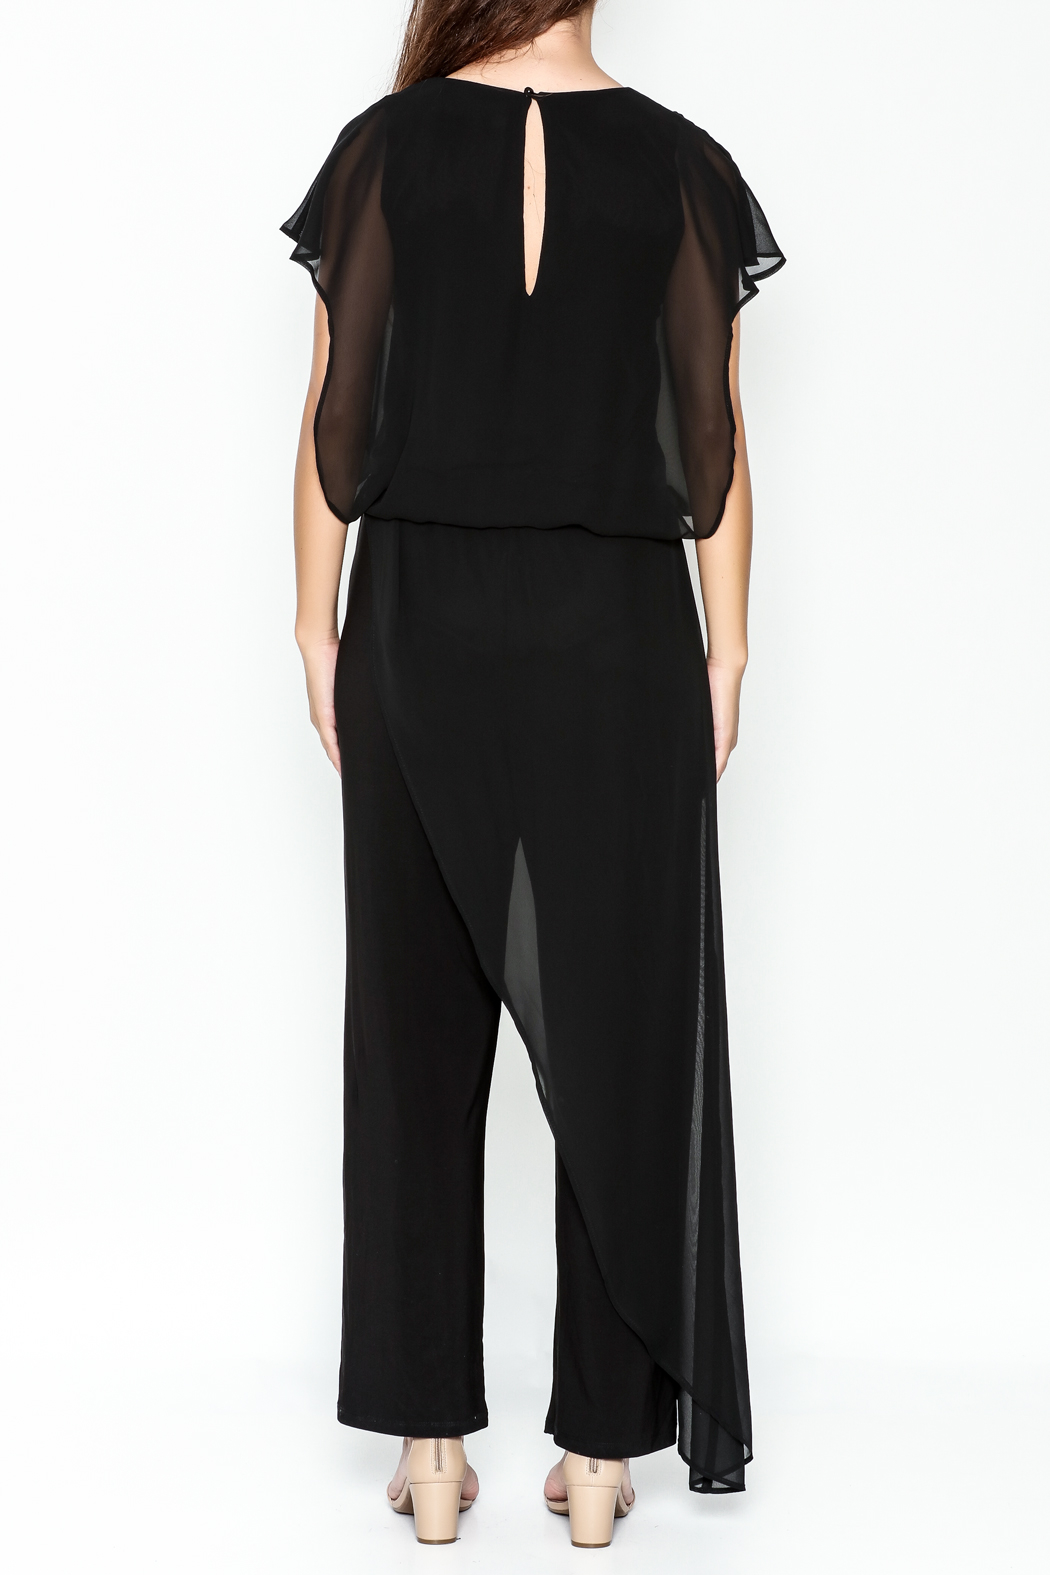 Talk of the Walk Sheer Overlay Jumpsuit - Back Cropped Image